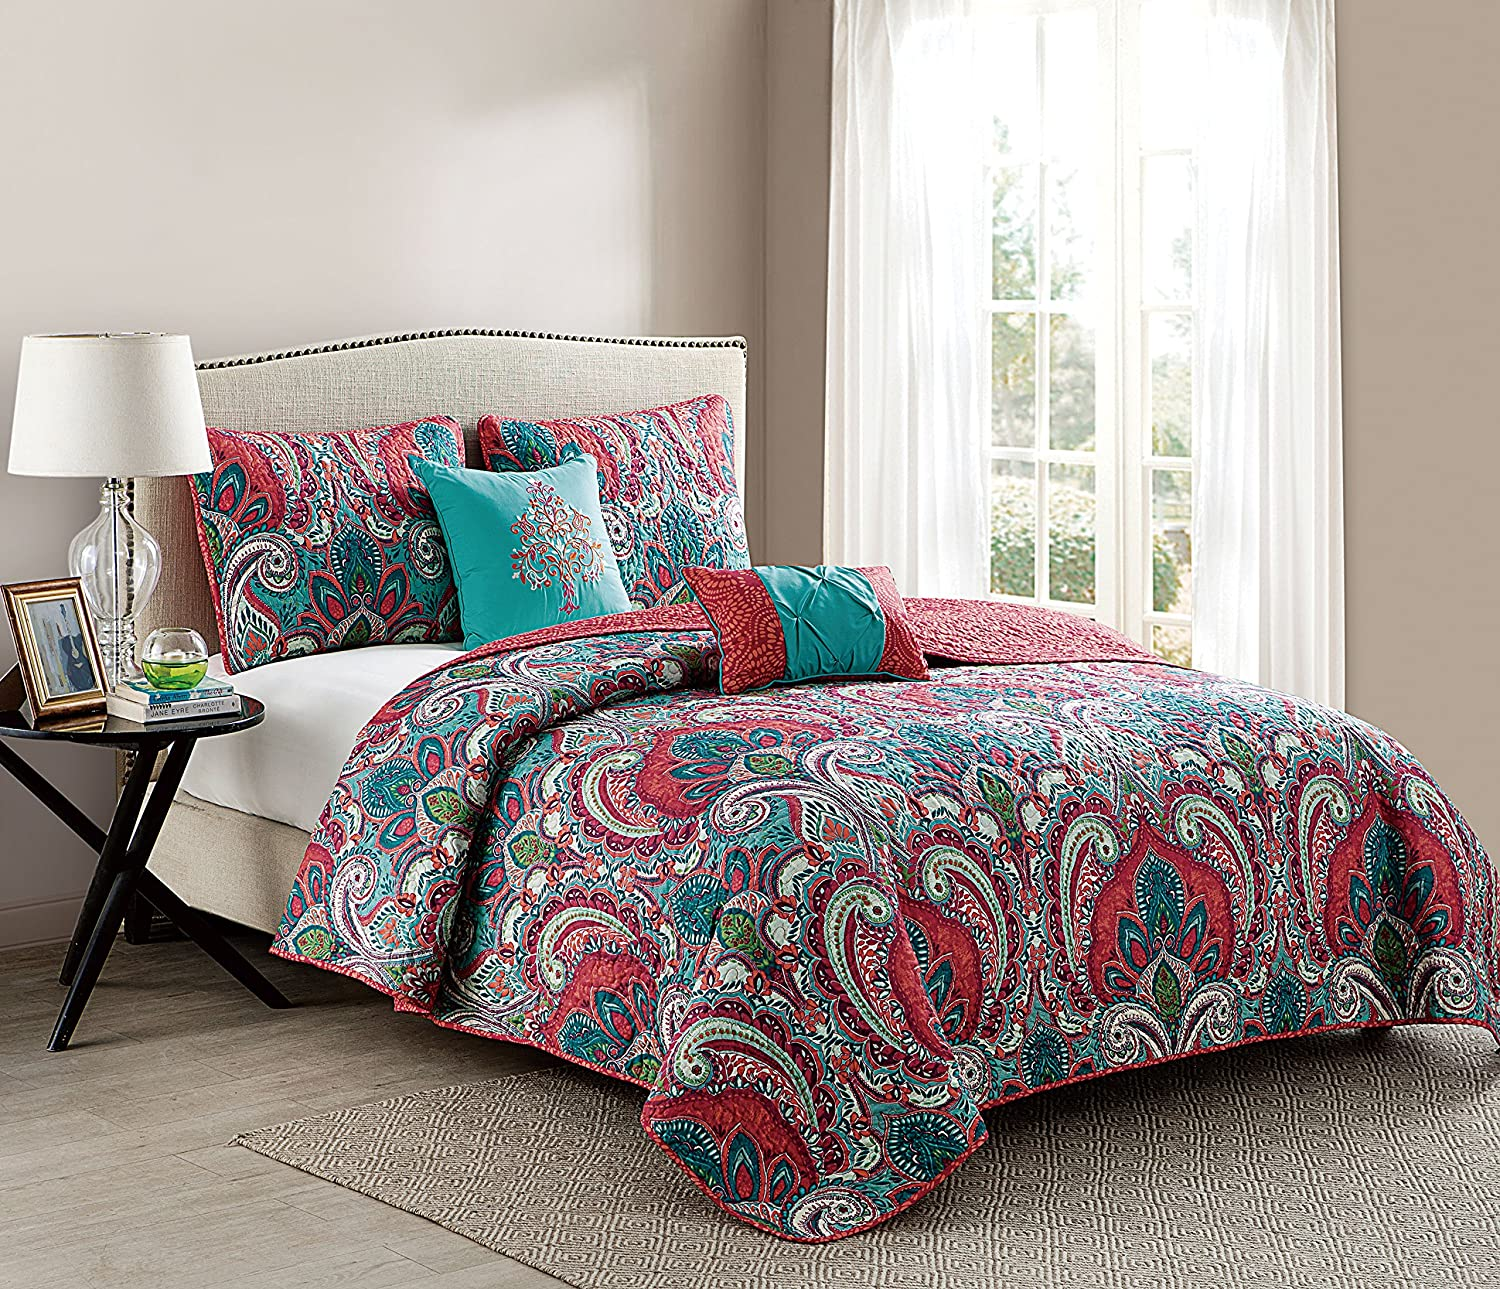 Twin Size Comforter Set in Multicolor Bohemian Style Paisley 4 Pc Set w/ Decorative Pillows Victoria Classics C10-4CS-TWIN-IN-MULTI